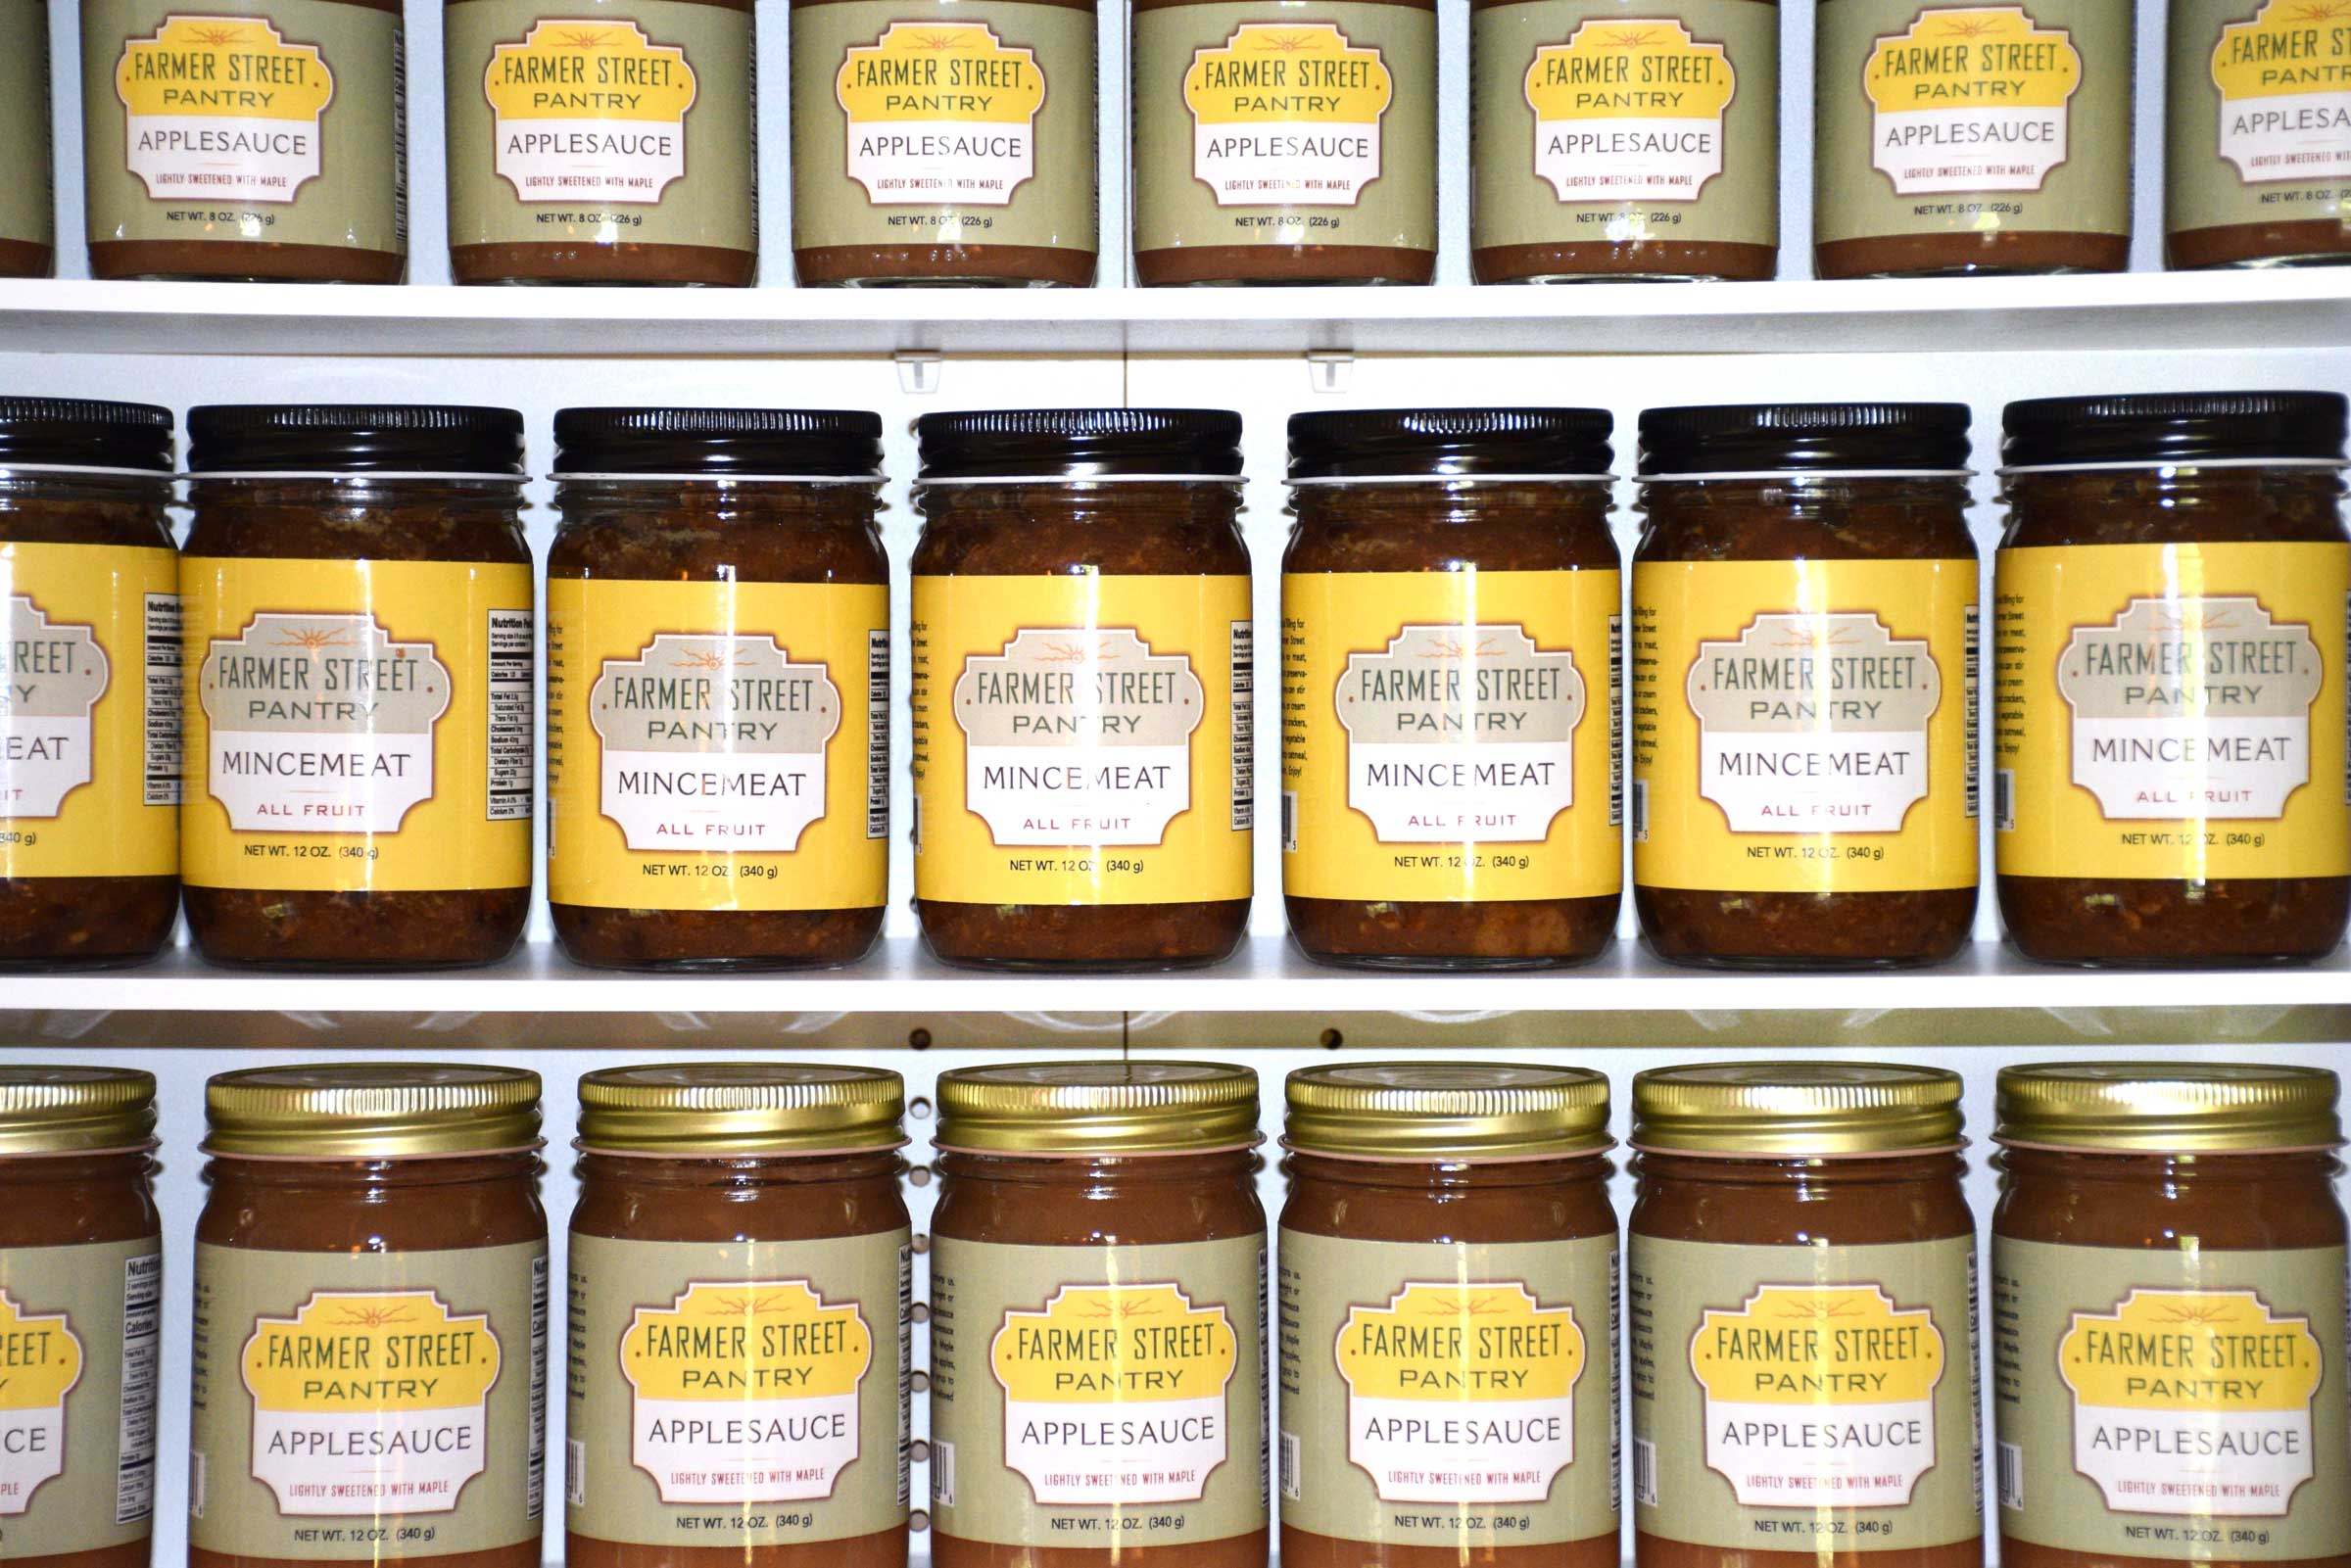 Farmer Street Pantry jars of mincemeat and applesauce on shelves in store